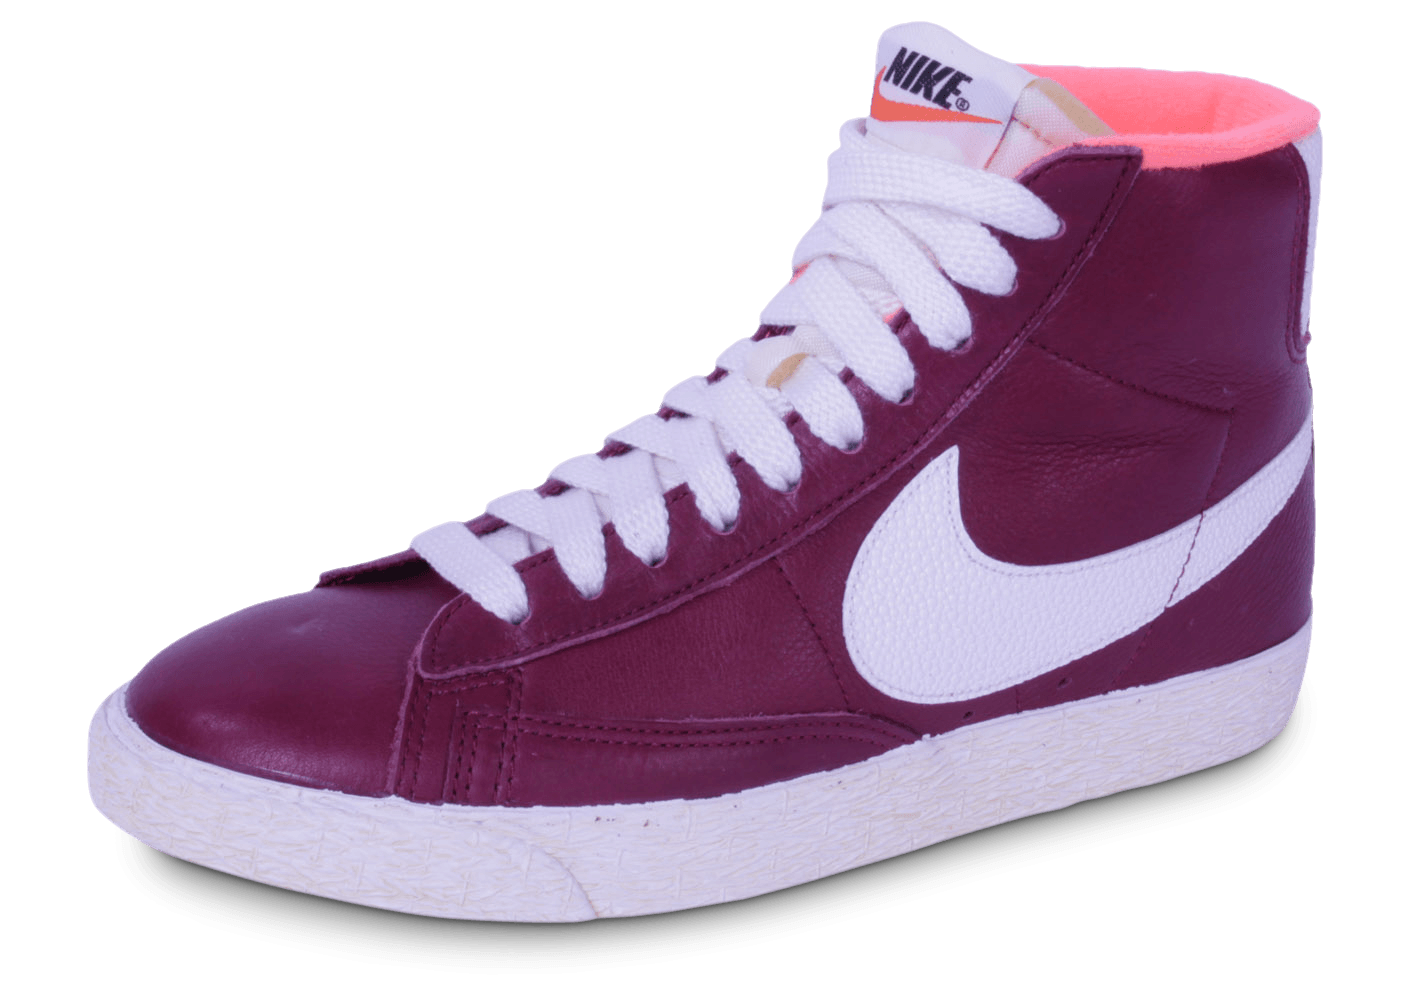 best sneakers 936a4 c31f4 Nike Blazer Cuir Grenat - Chaussures Chaussures - Chausport